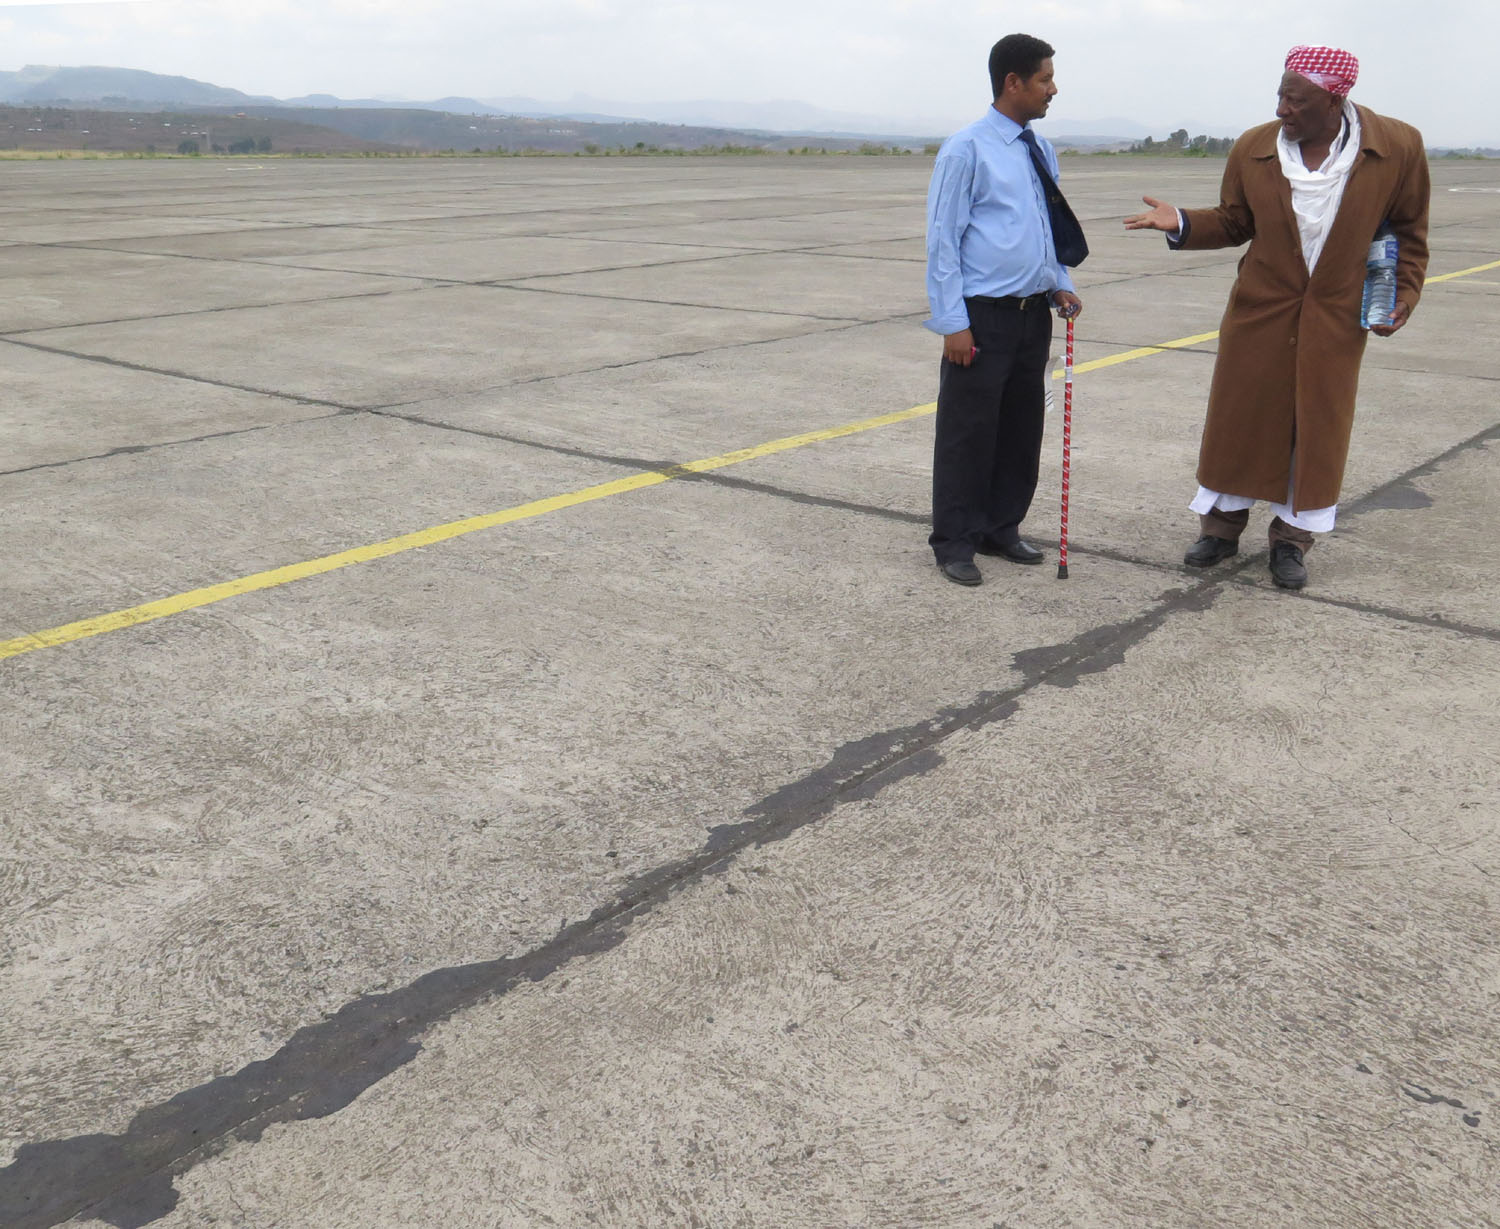 Ethiopia-Lalibela-Airport-Say-What